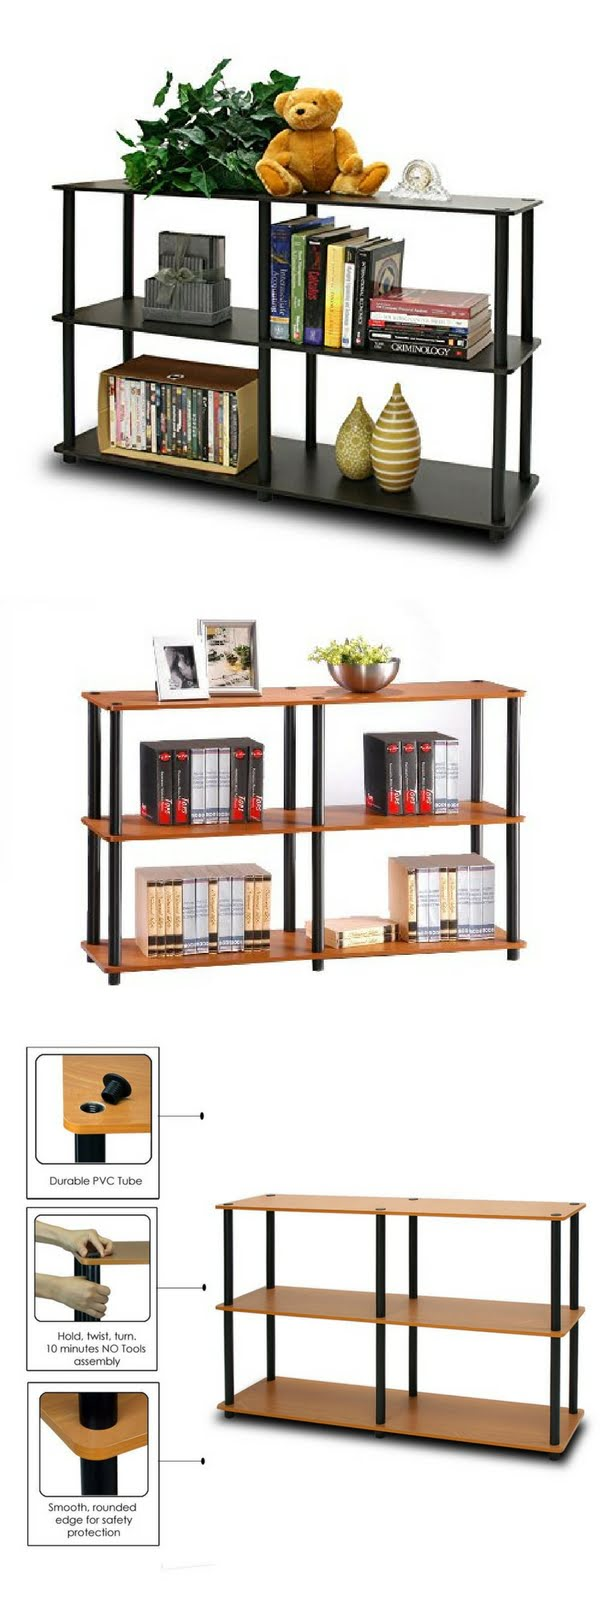 Check out the Furinno Turn-N-Tube Bookcase